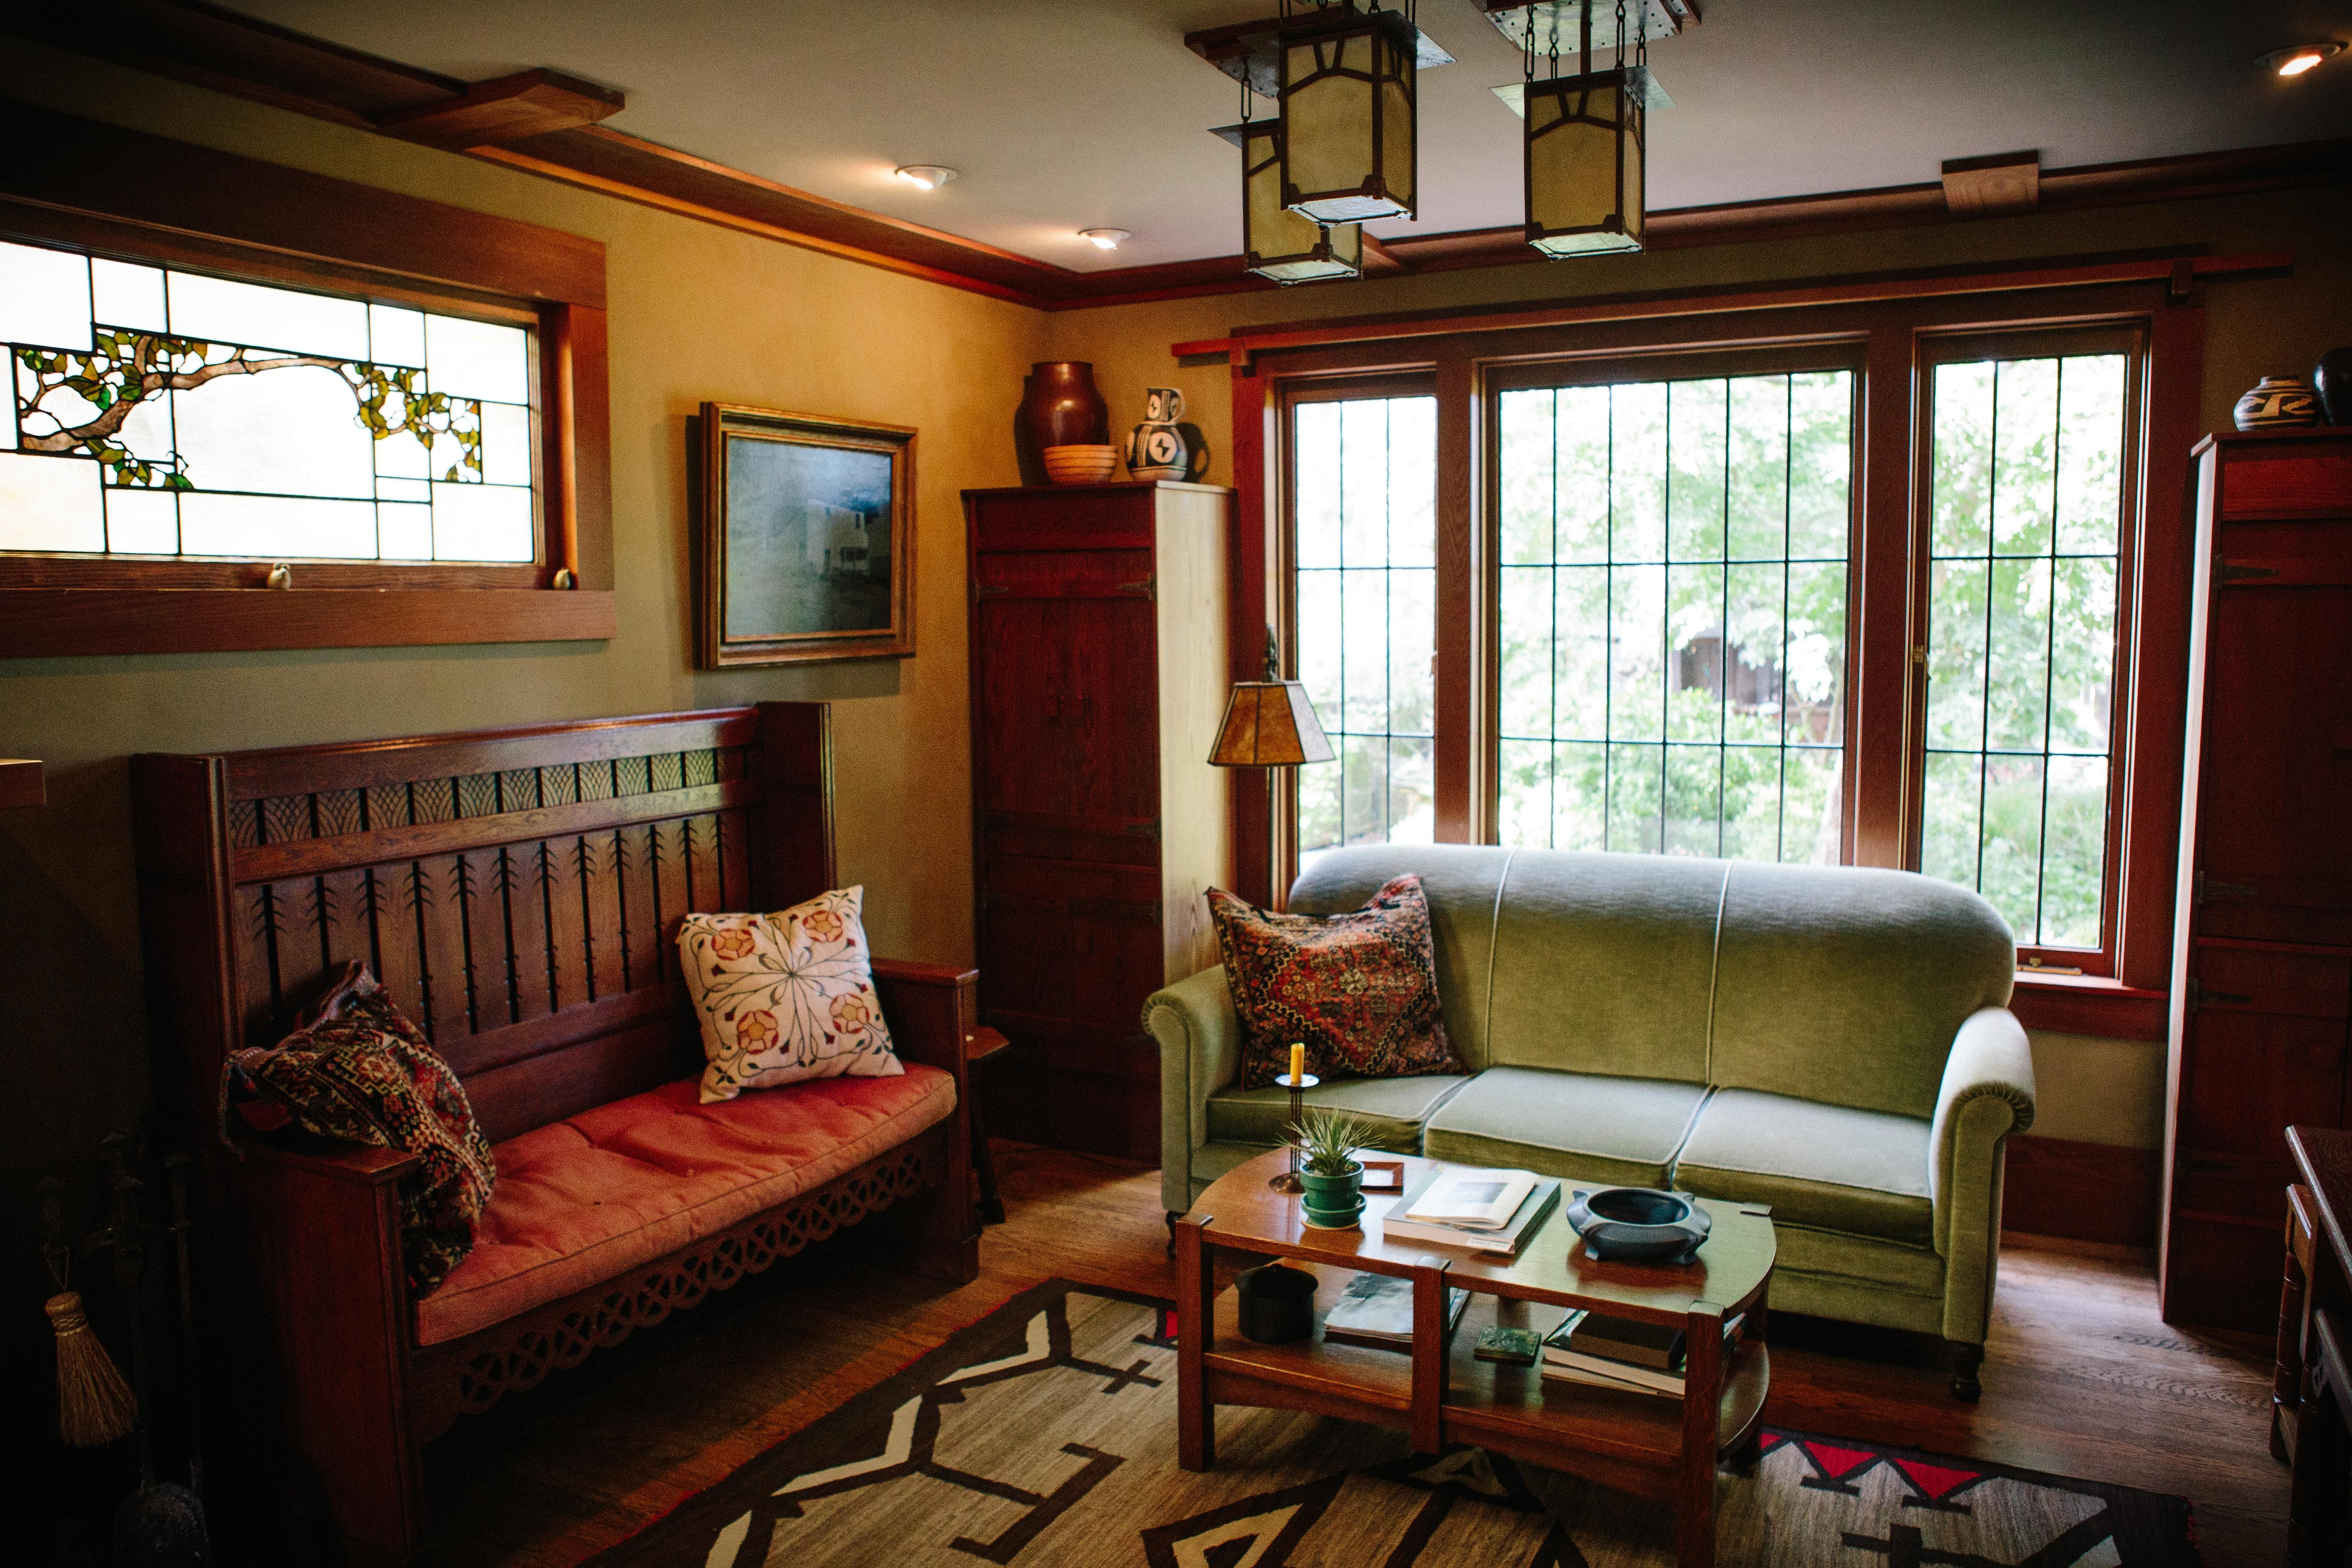 Arts And Crafts Craftsman Bungalow Living Room Stickley Teco Pillows Embroidery Bungalow Living Rooms Bungalow Interiors Craftsman Living Rooms